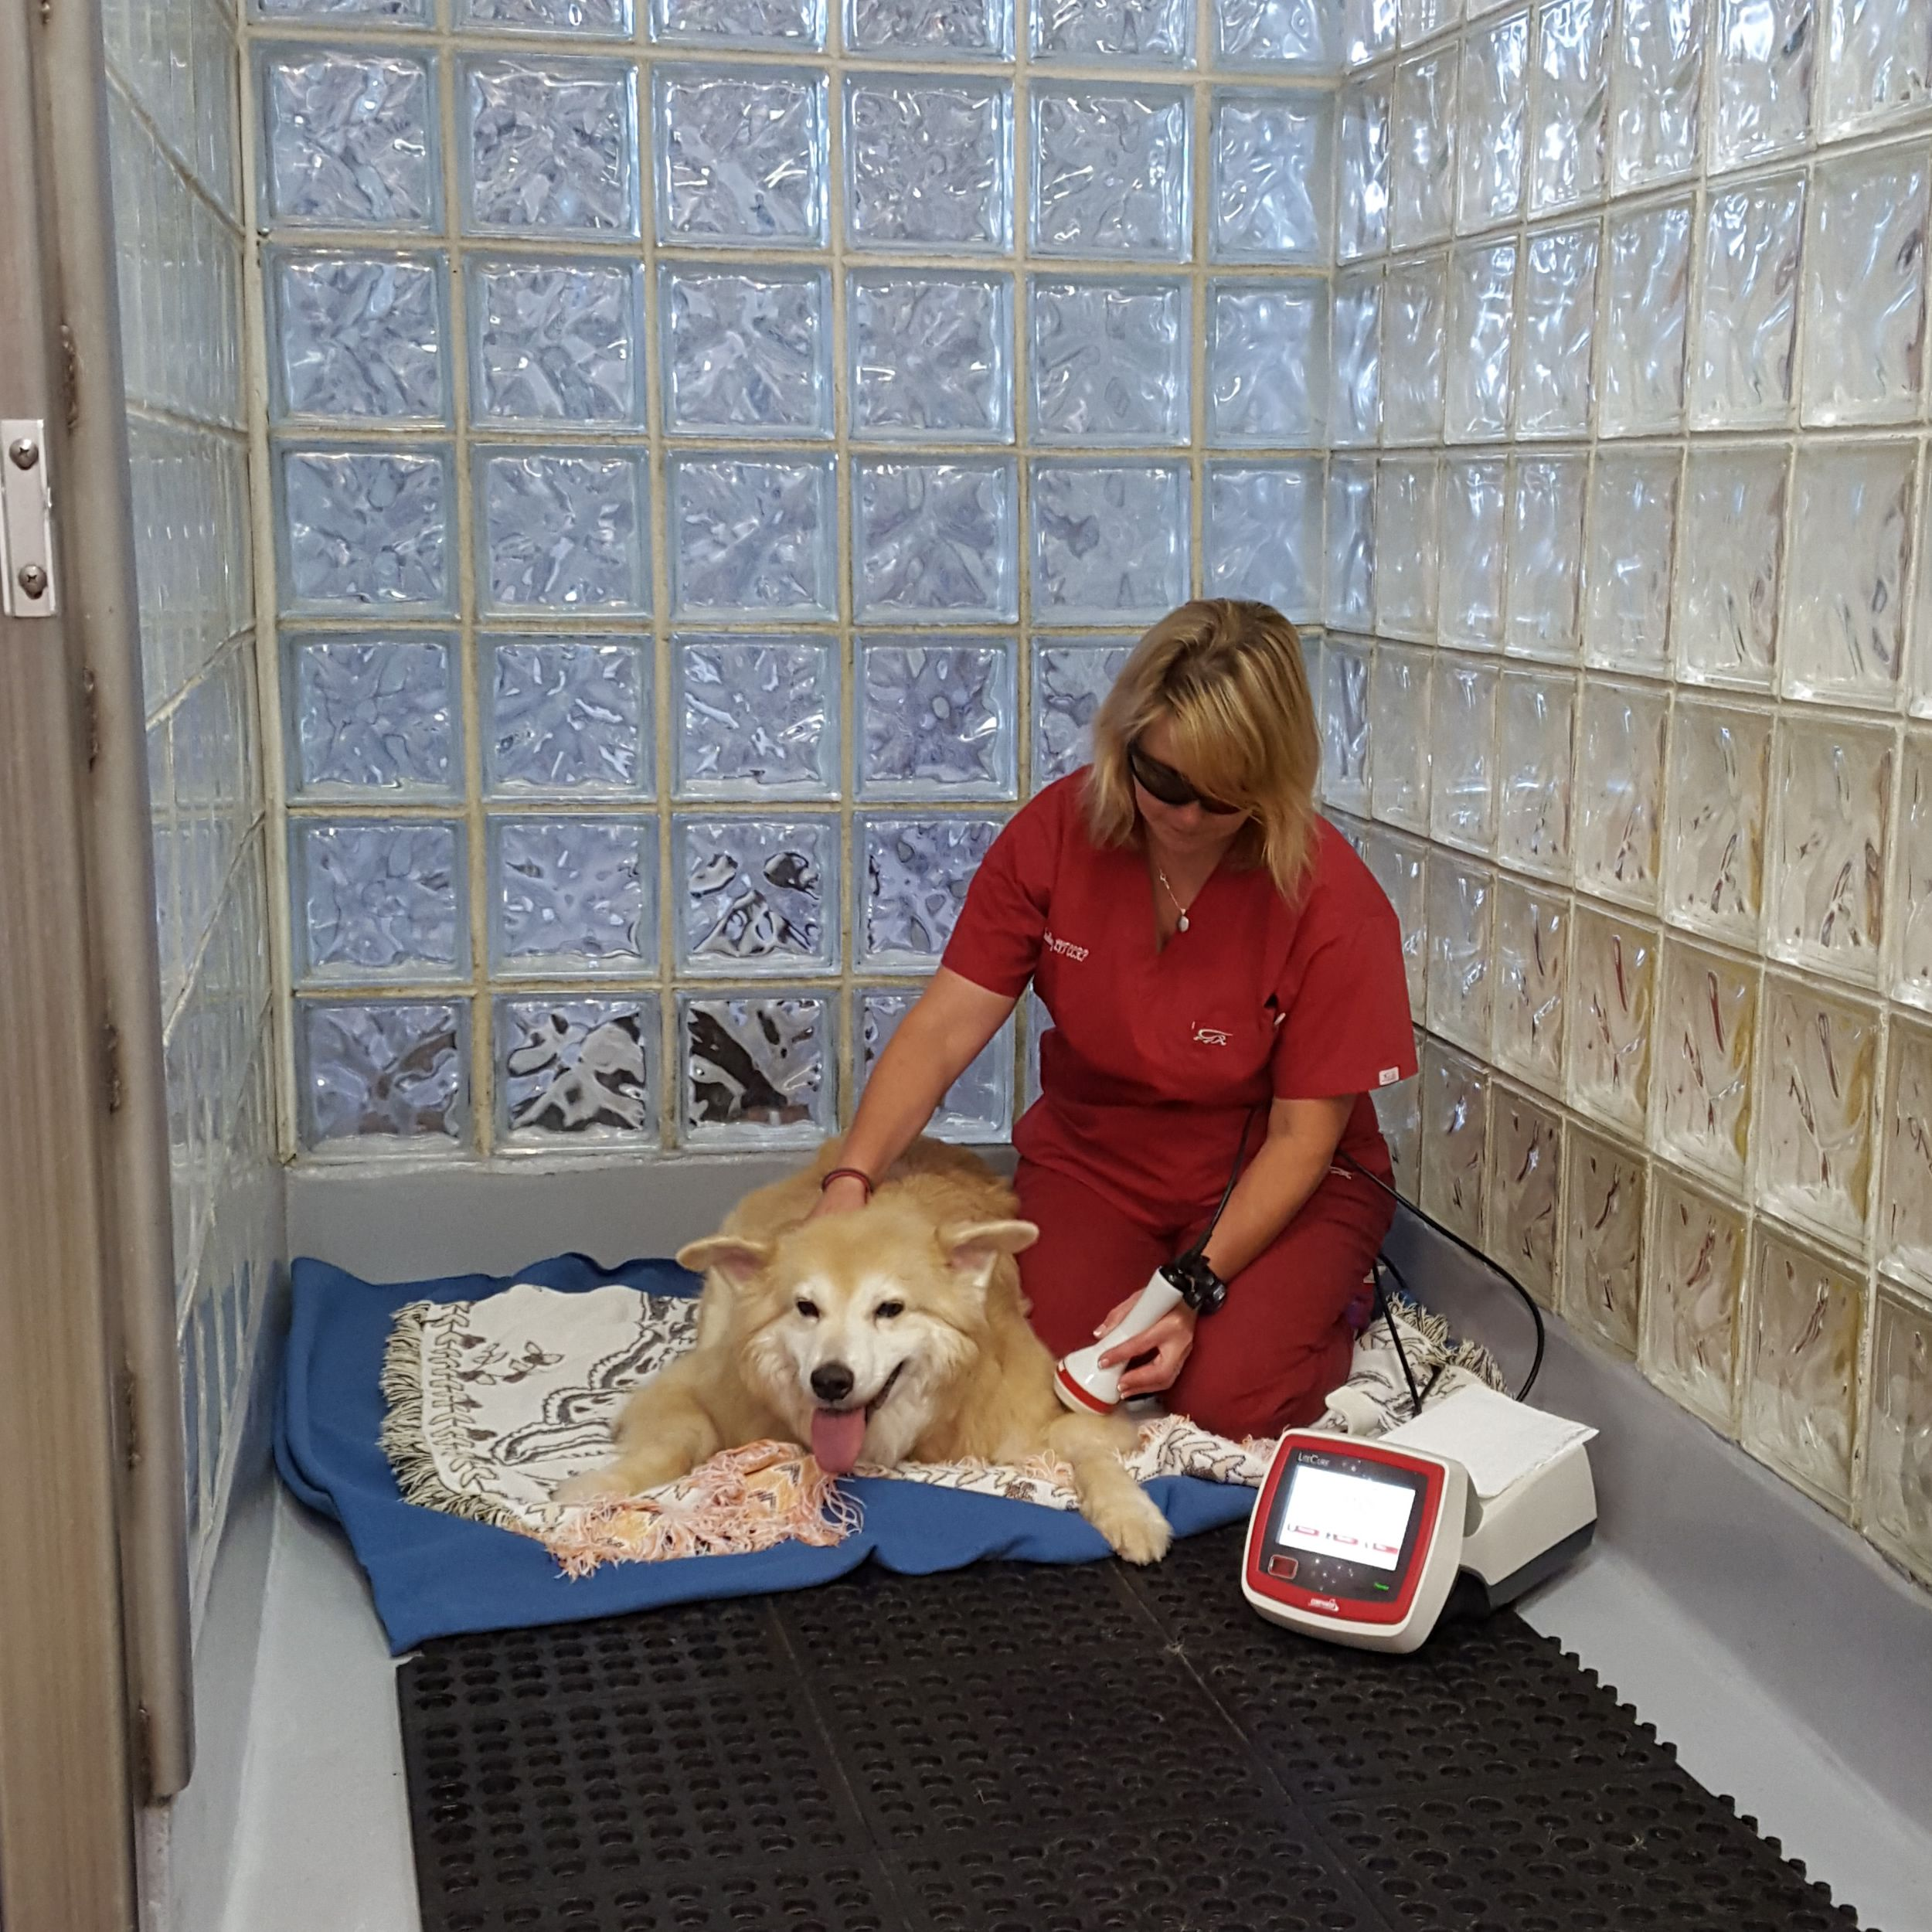 Kim Darling performing Laser Therapy on a patient